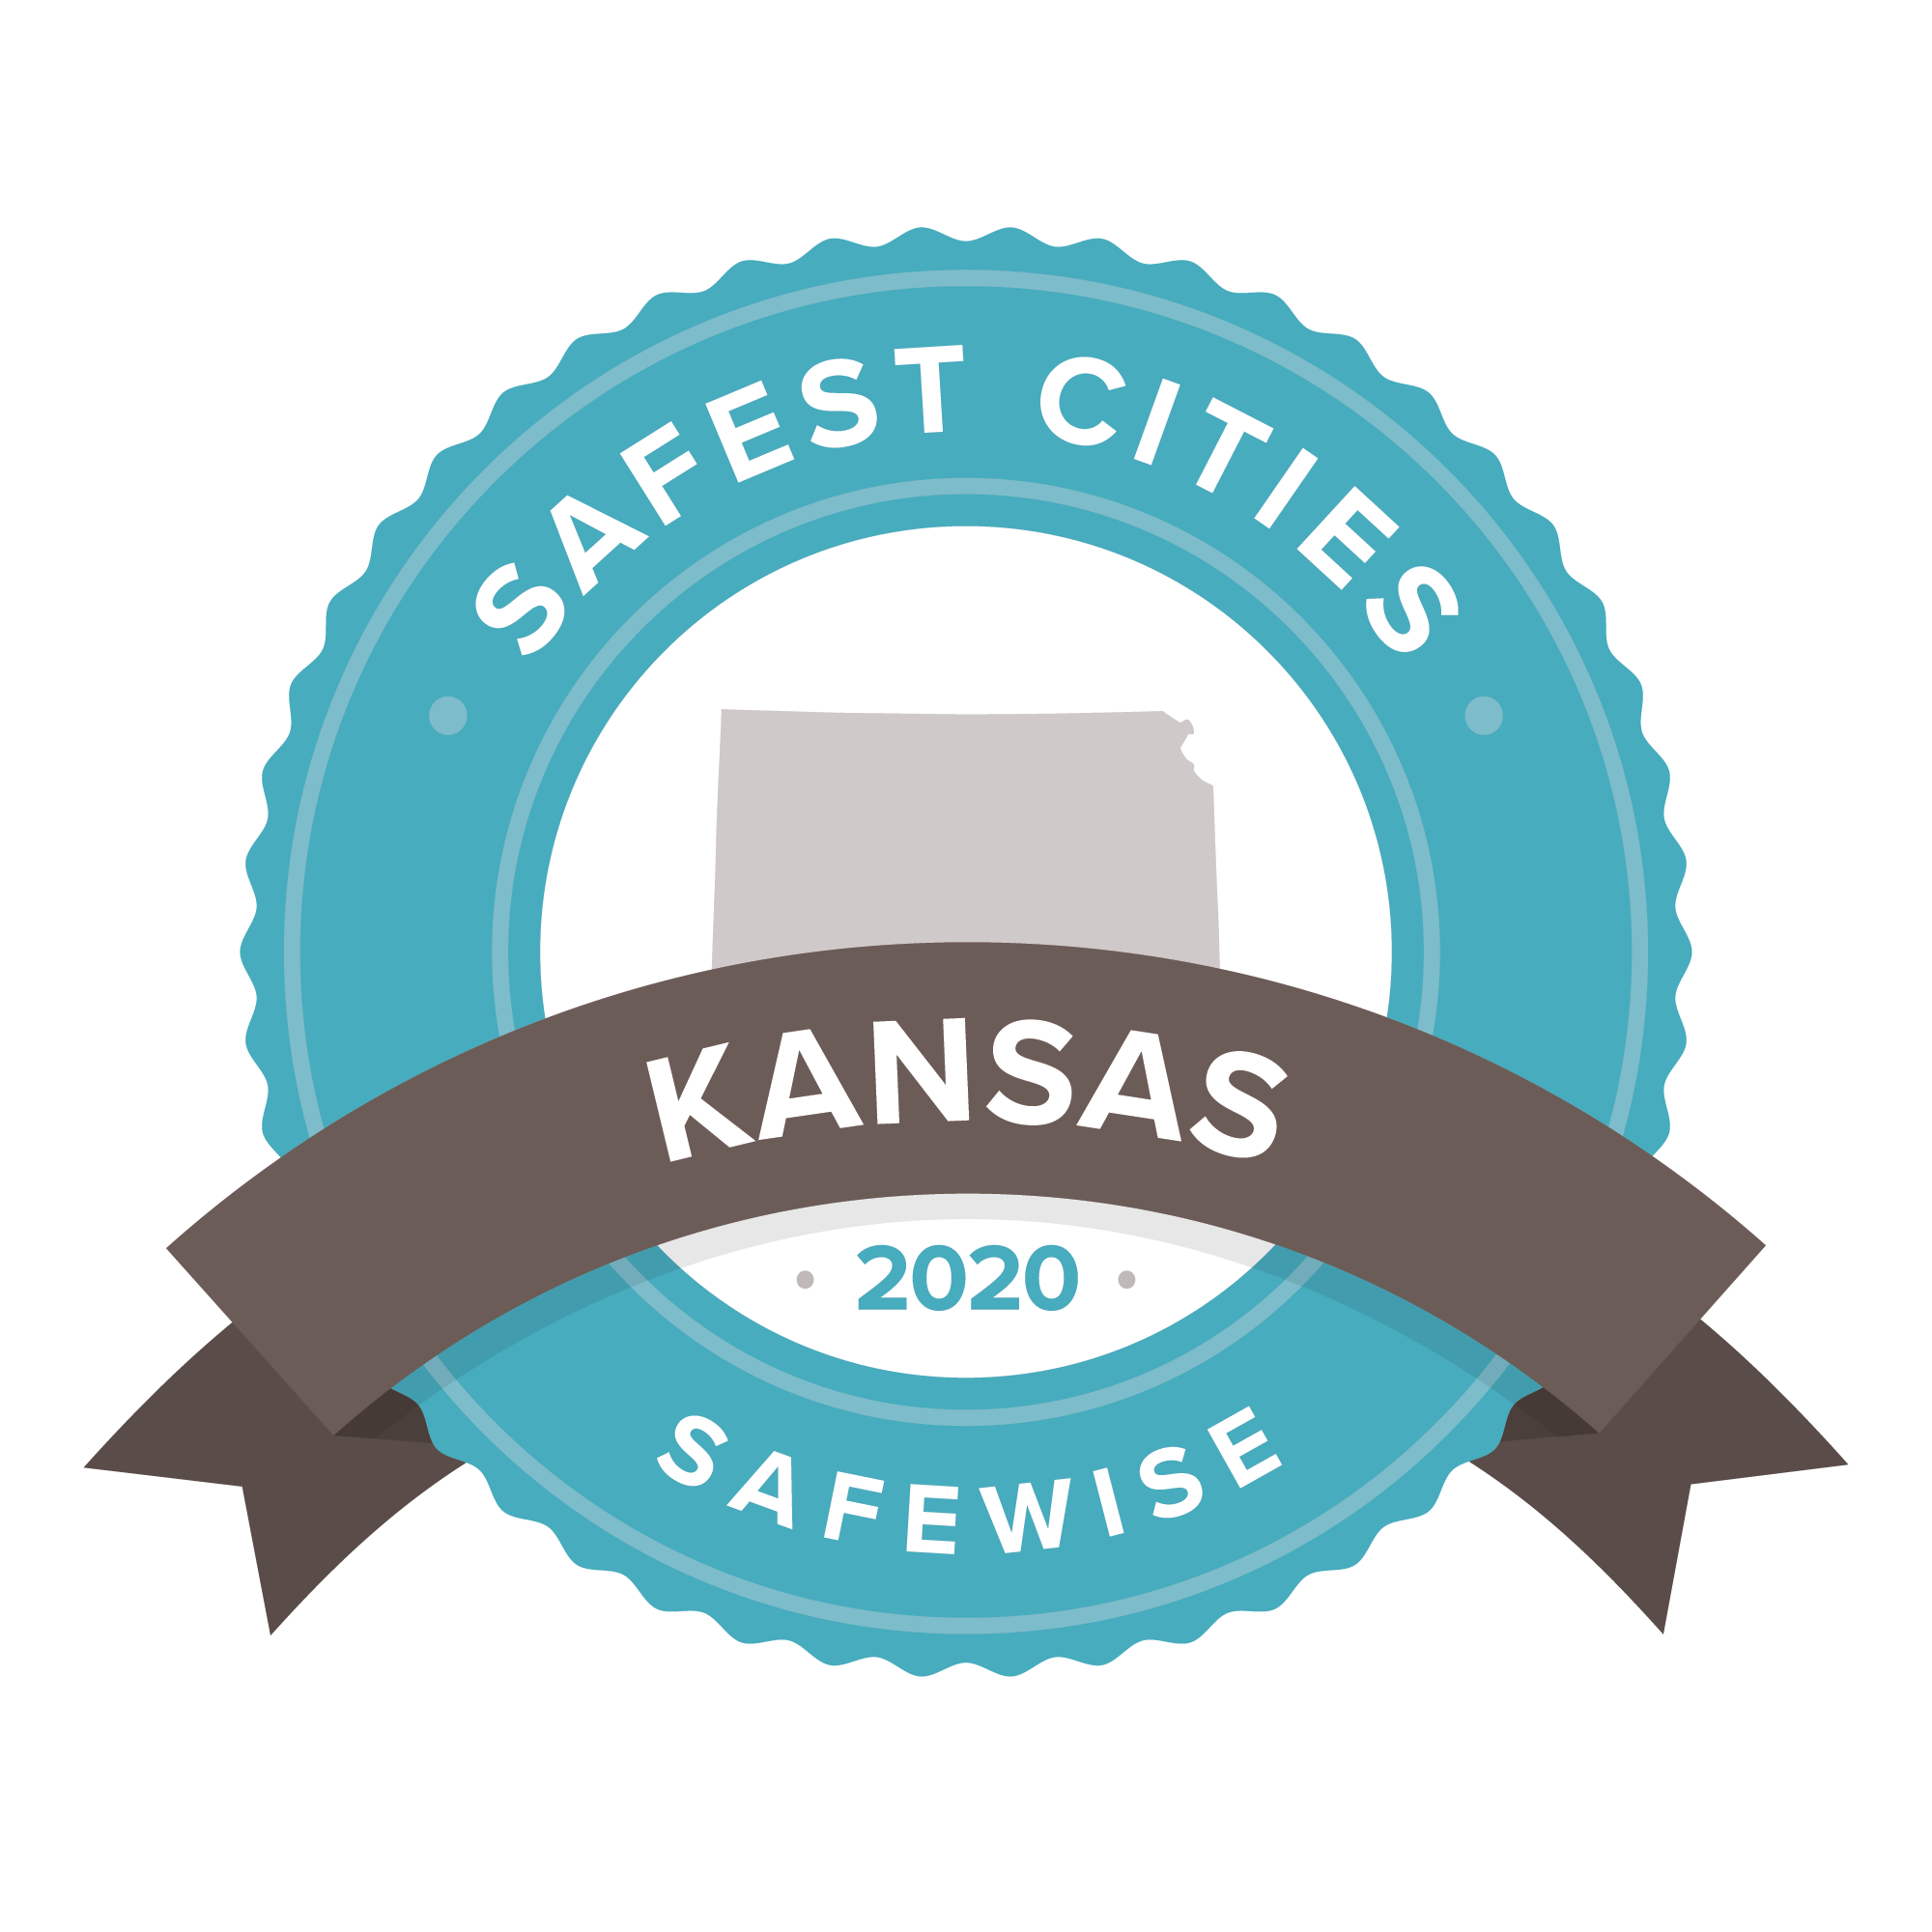 Kansas safest cities badge 2020